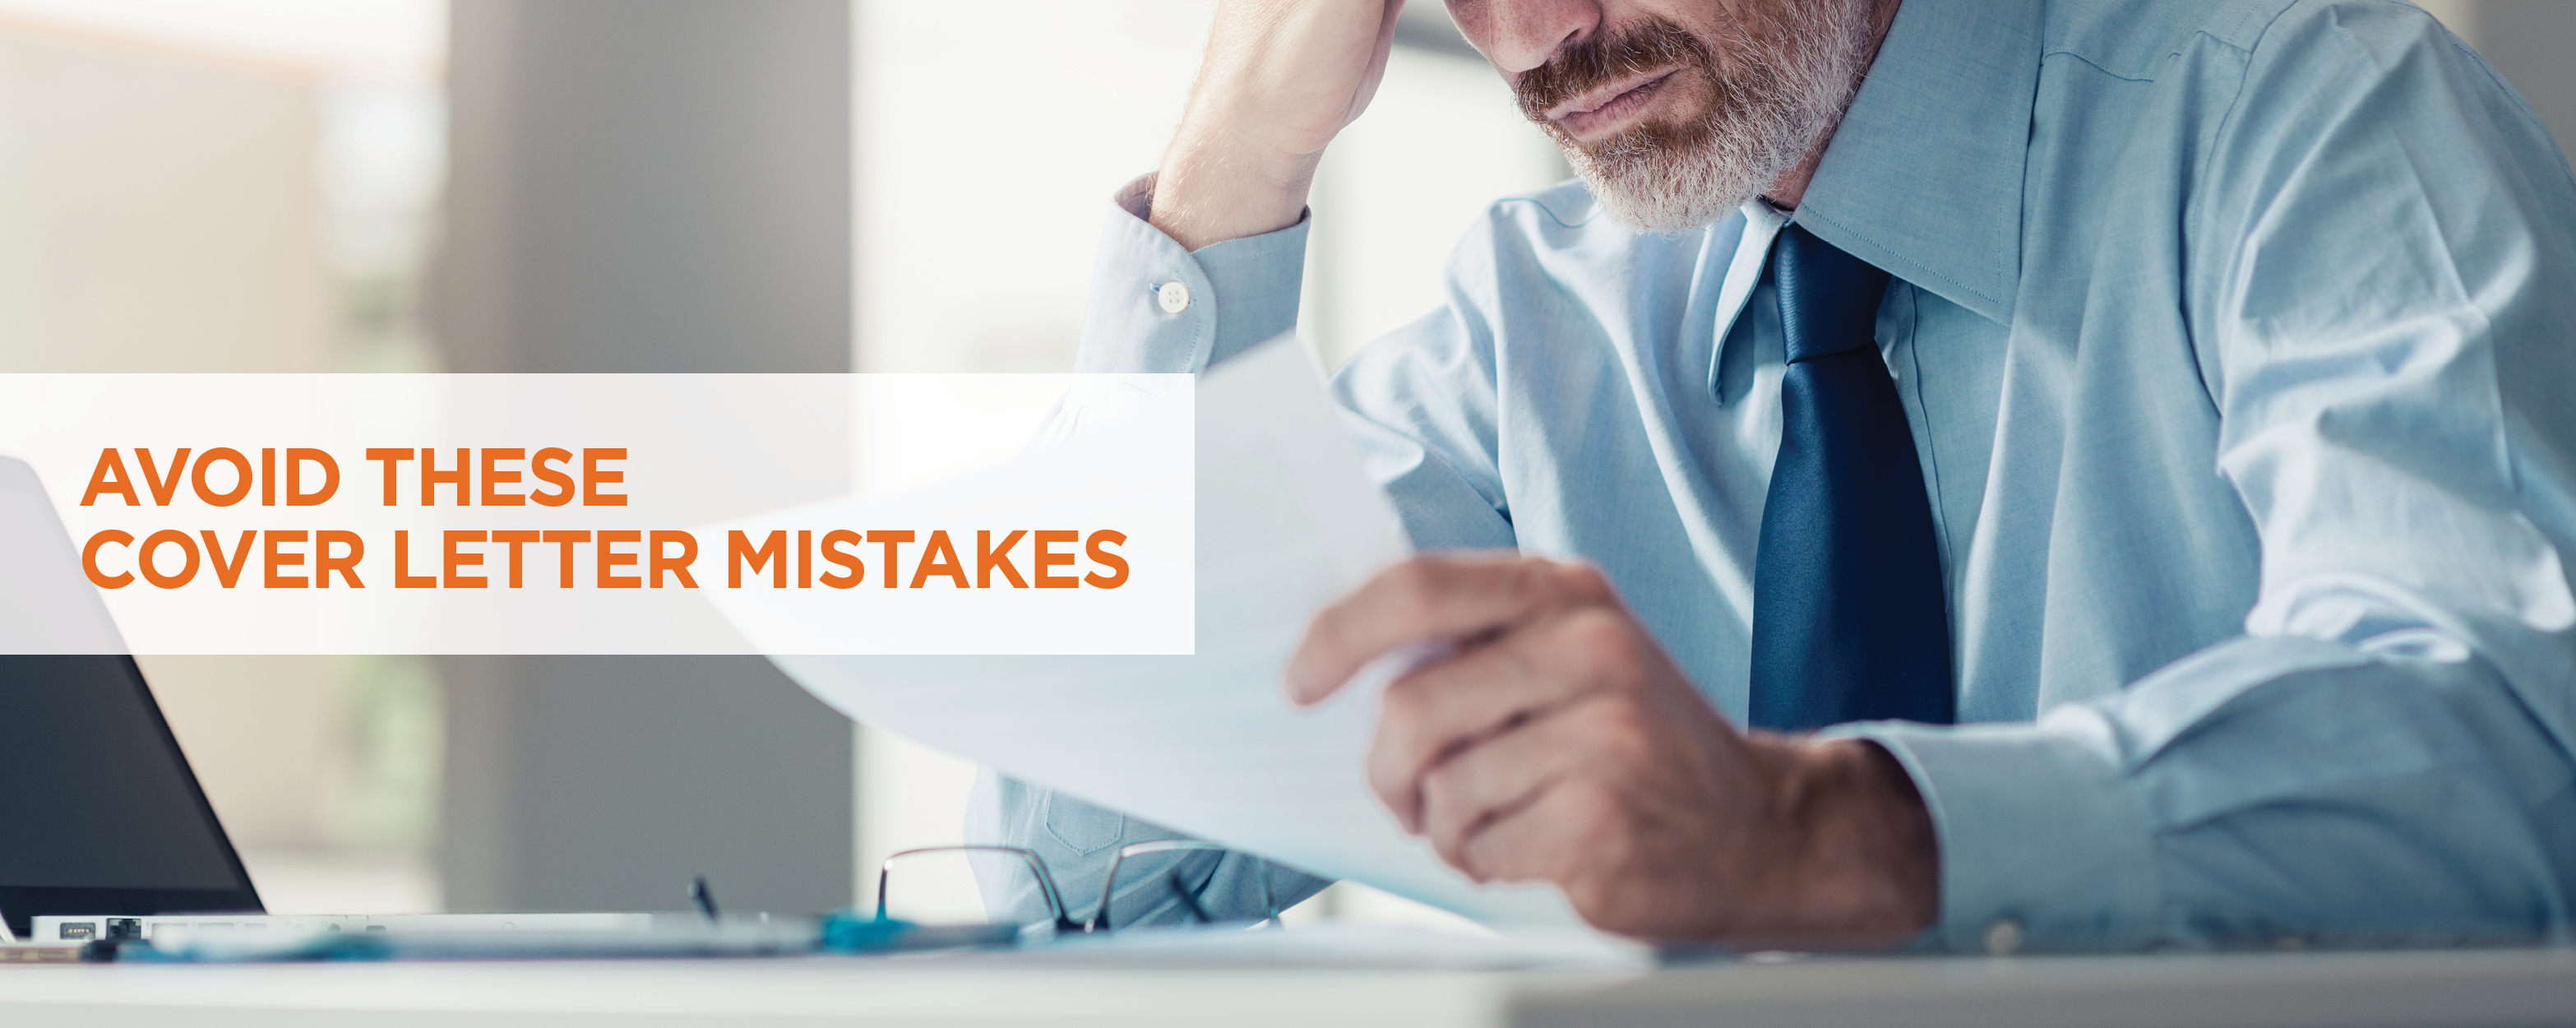 avoid these cover letter mistakes swoon avoid these cover letter mistakes